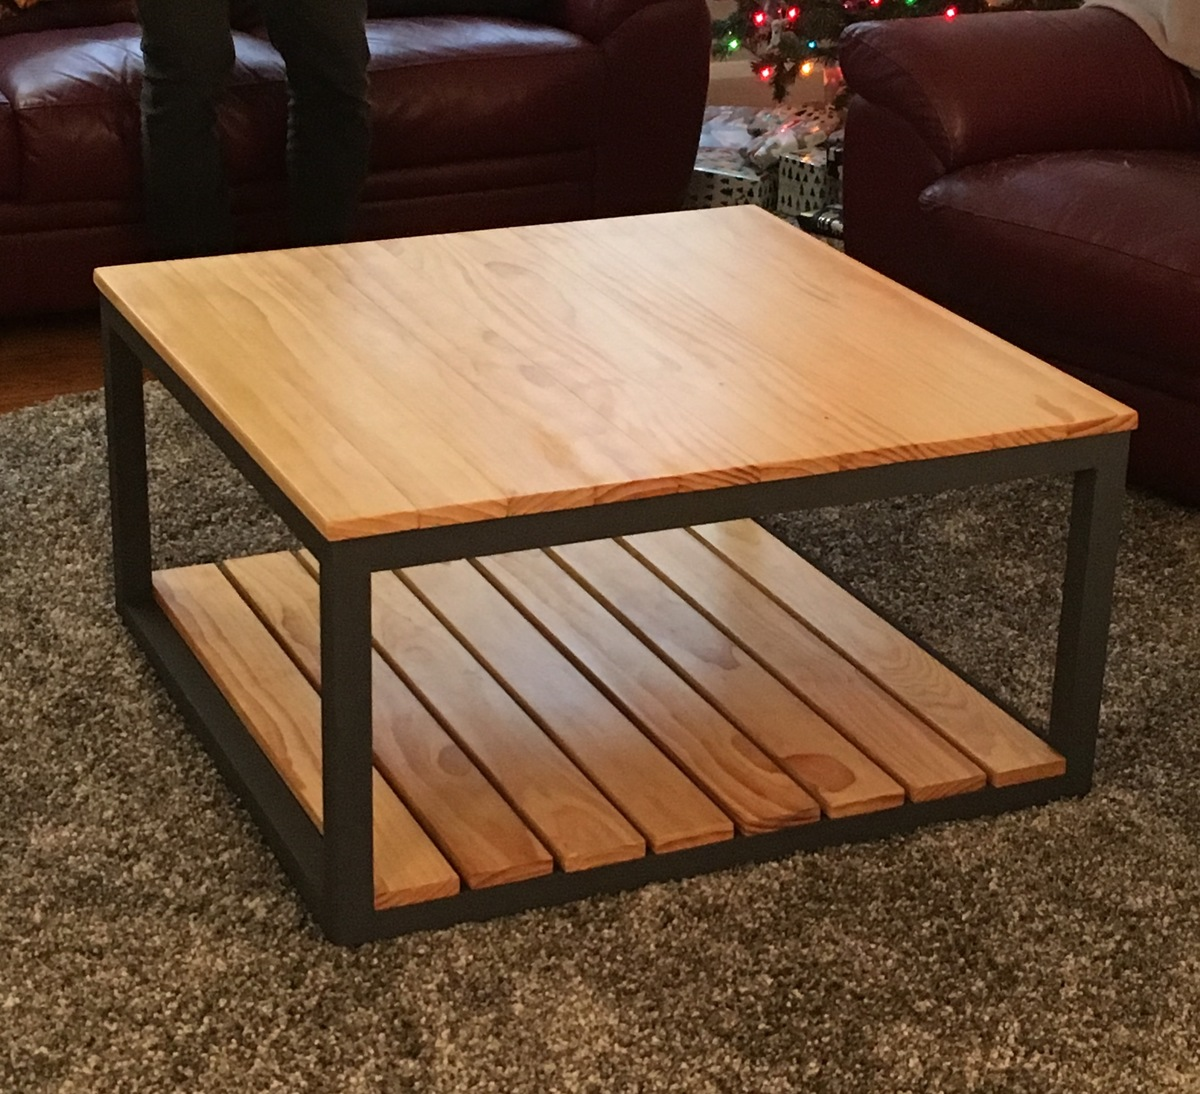 Modified Industrial Style Coffee Table W/ Bottom Shelf